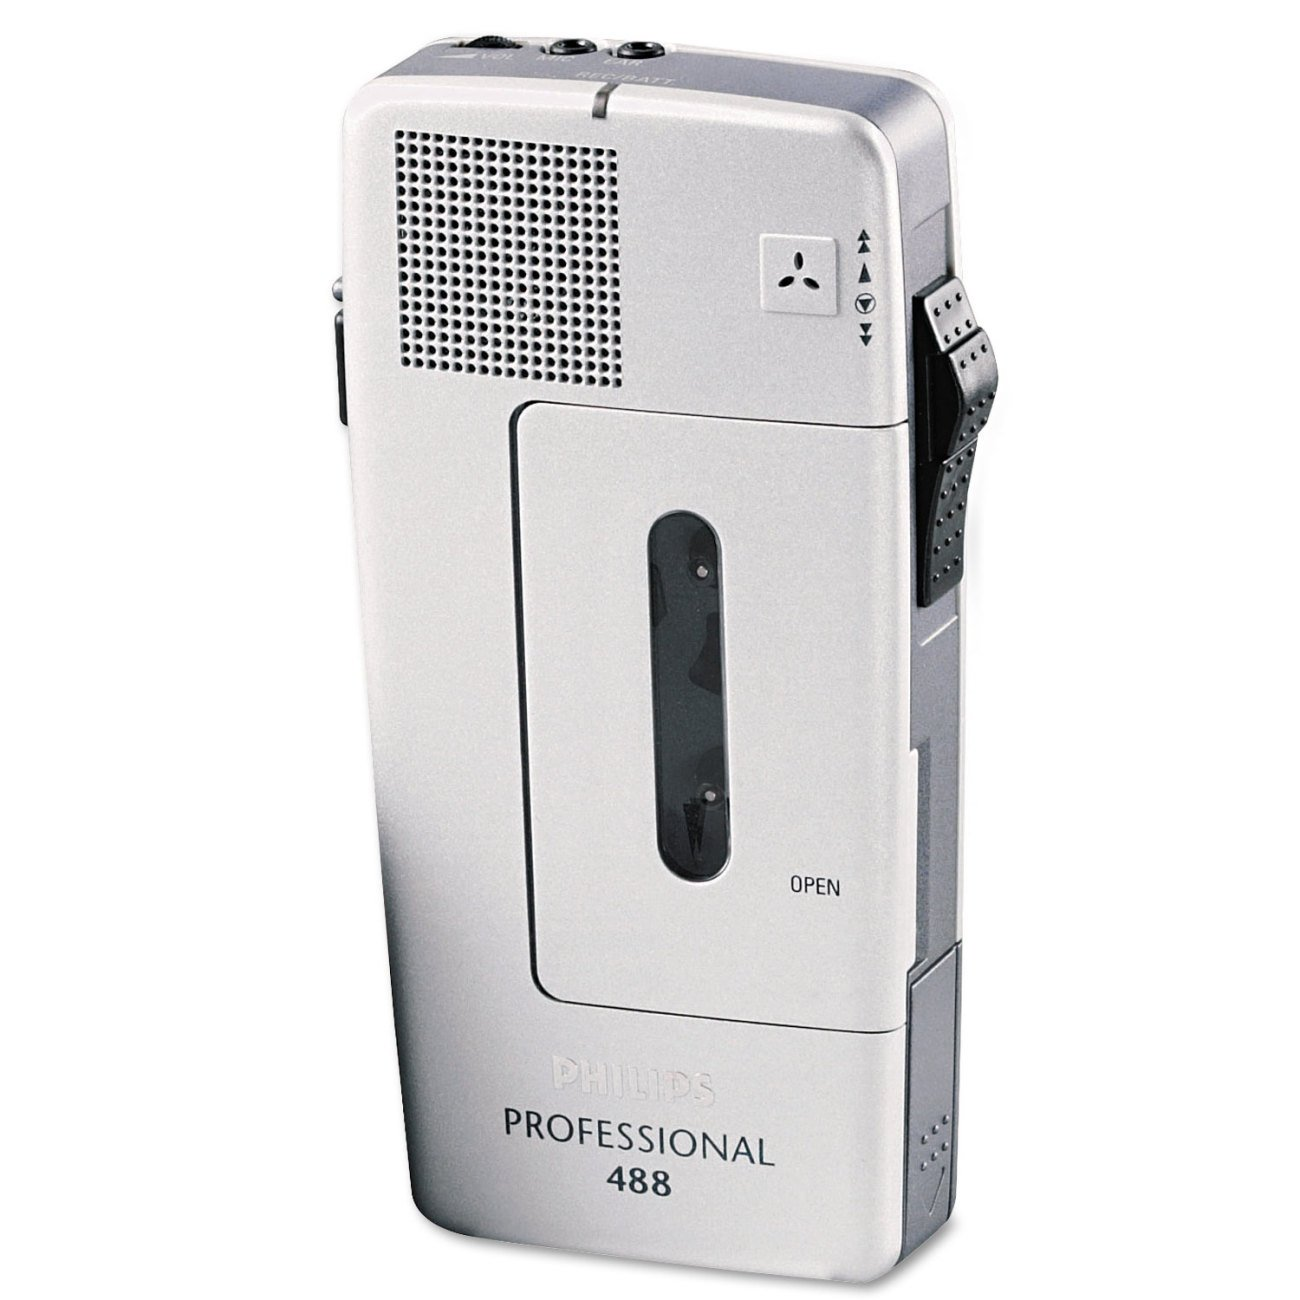 Philips LFH048800B Dictation Recorder Cassette Player Product, Silver